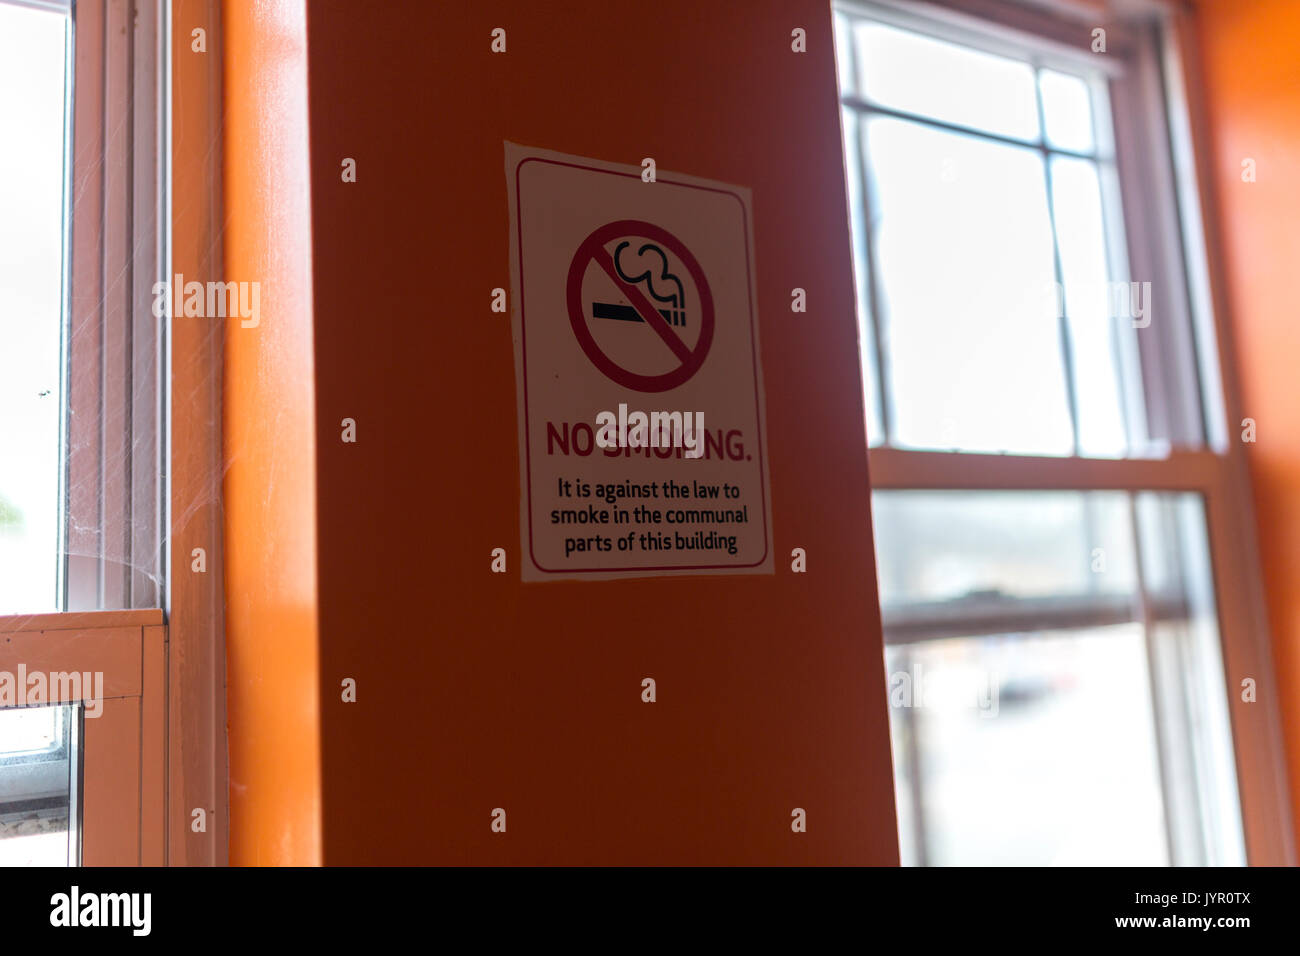 No Smoking sign on wall in stairwell of flats, London. Stock Photo